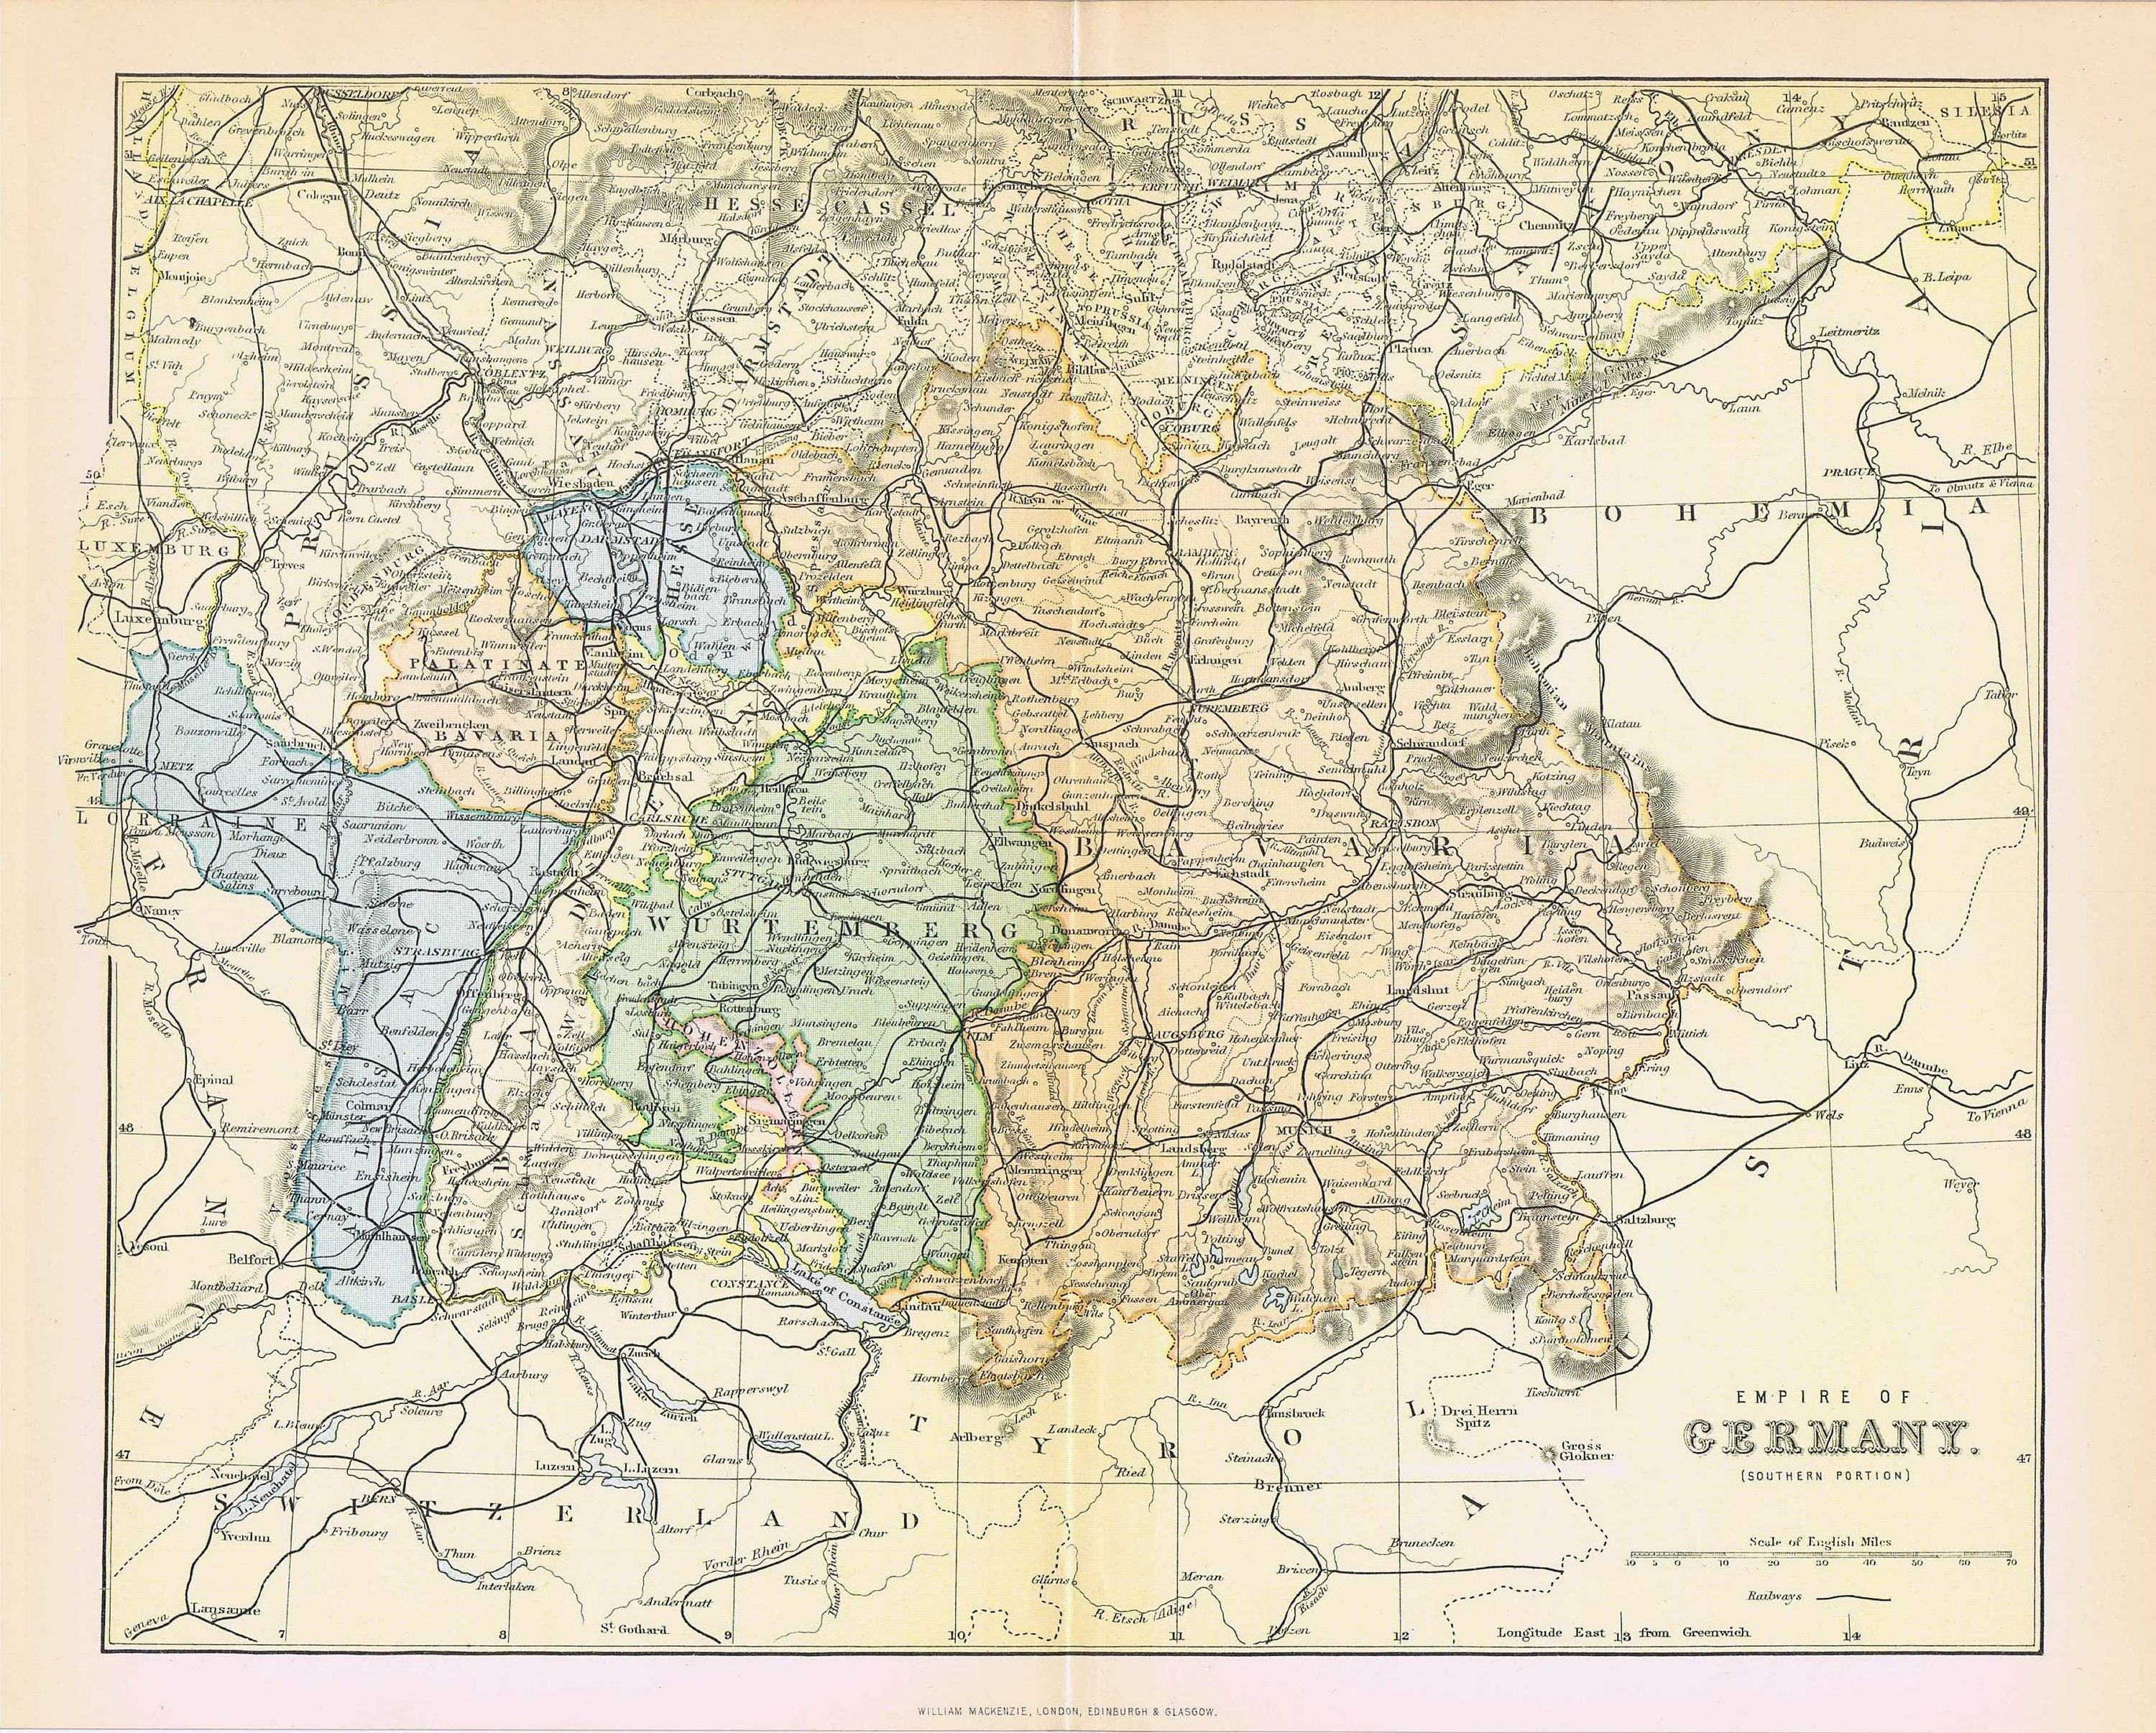 Map Of South Germany.1880 Antique Map Empire Of Germany South Bavaria